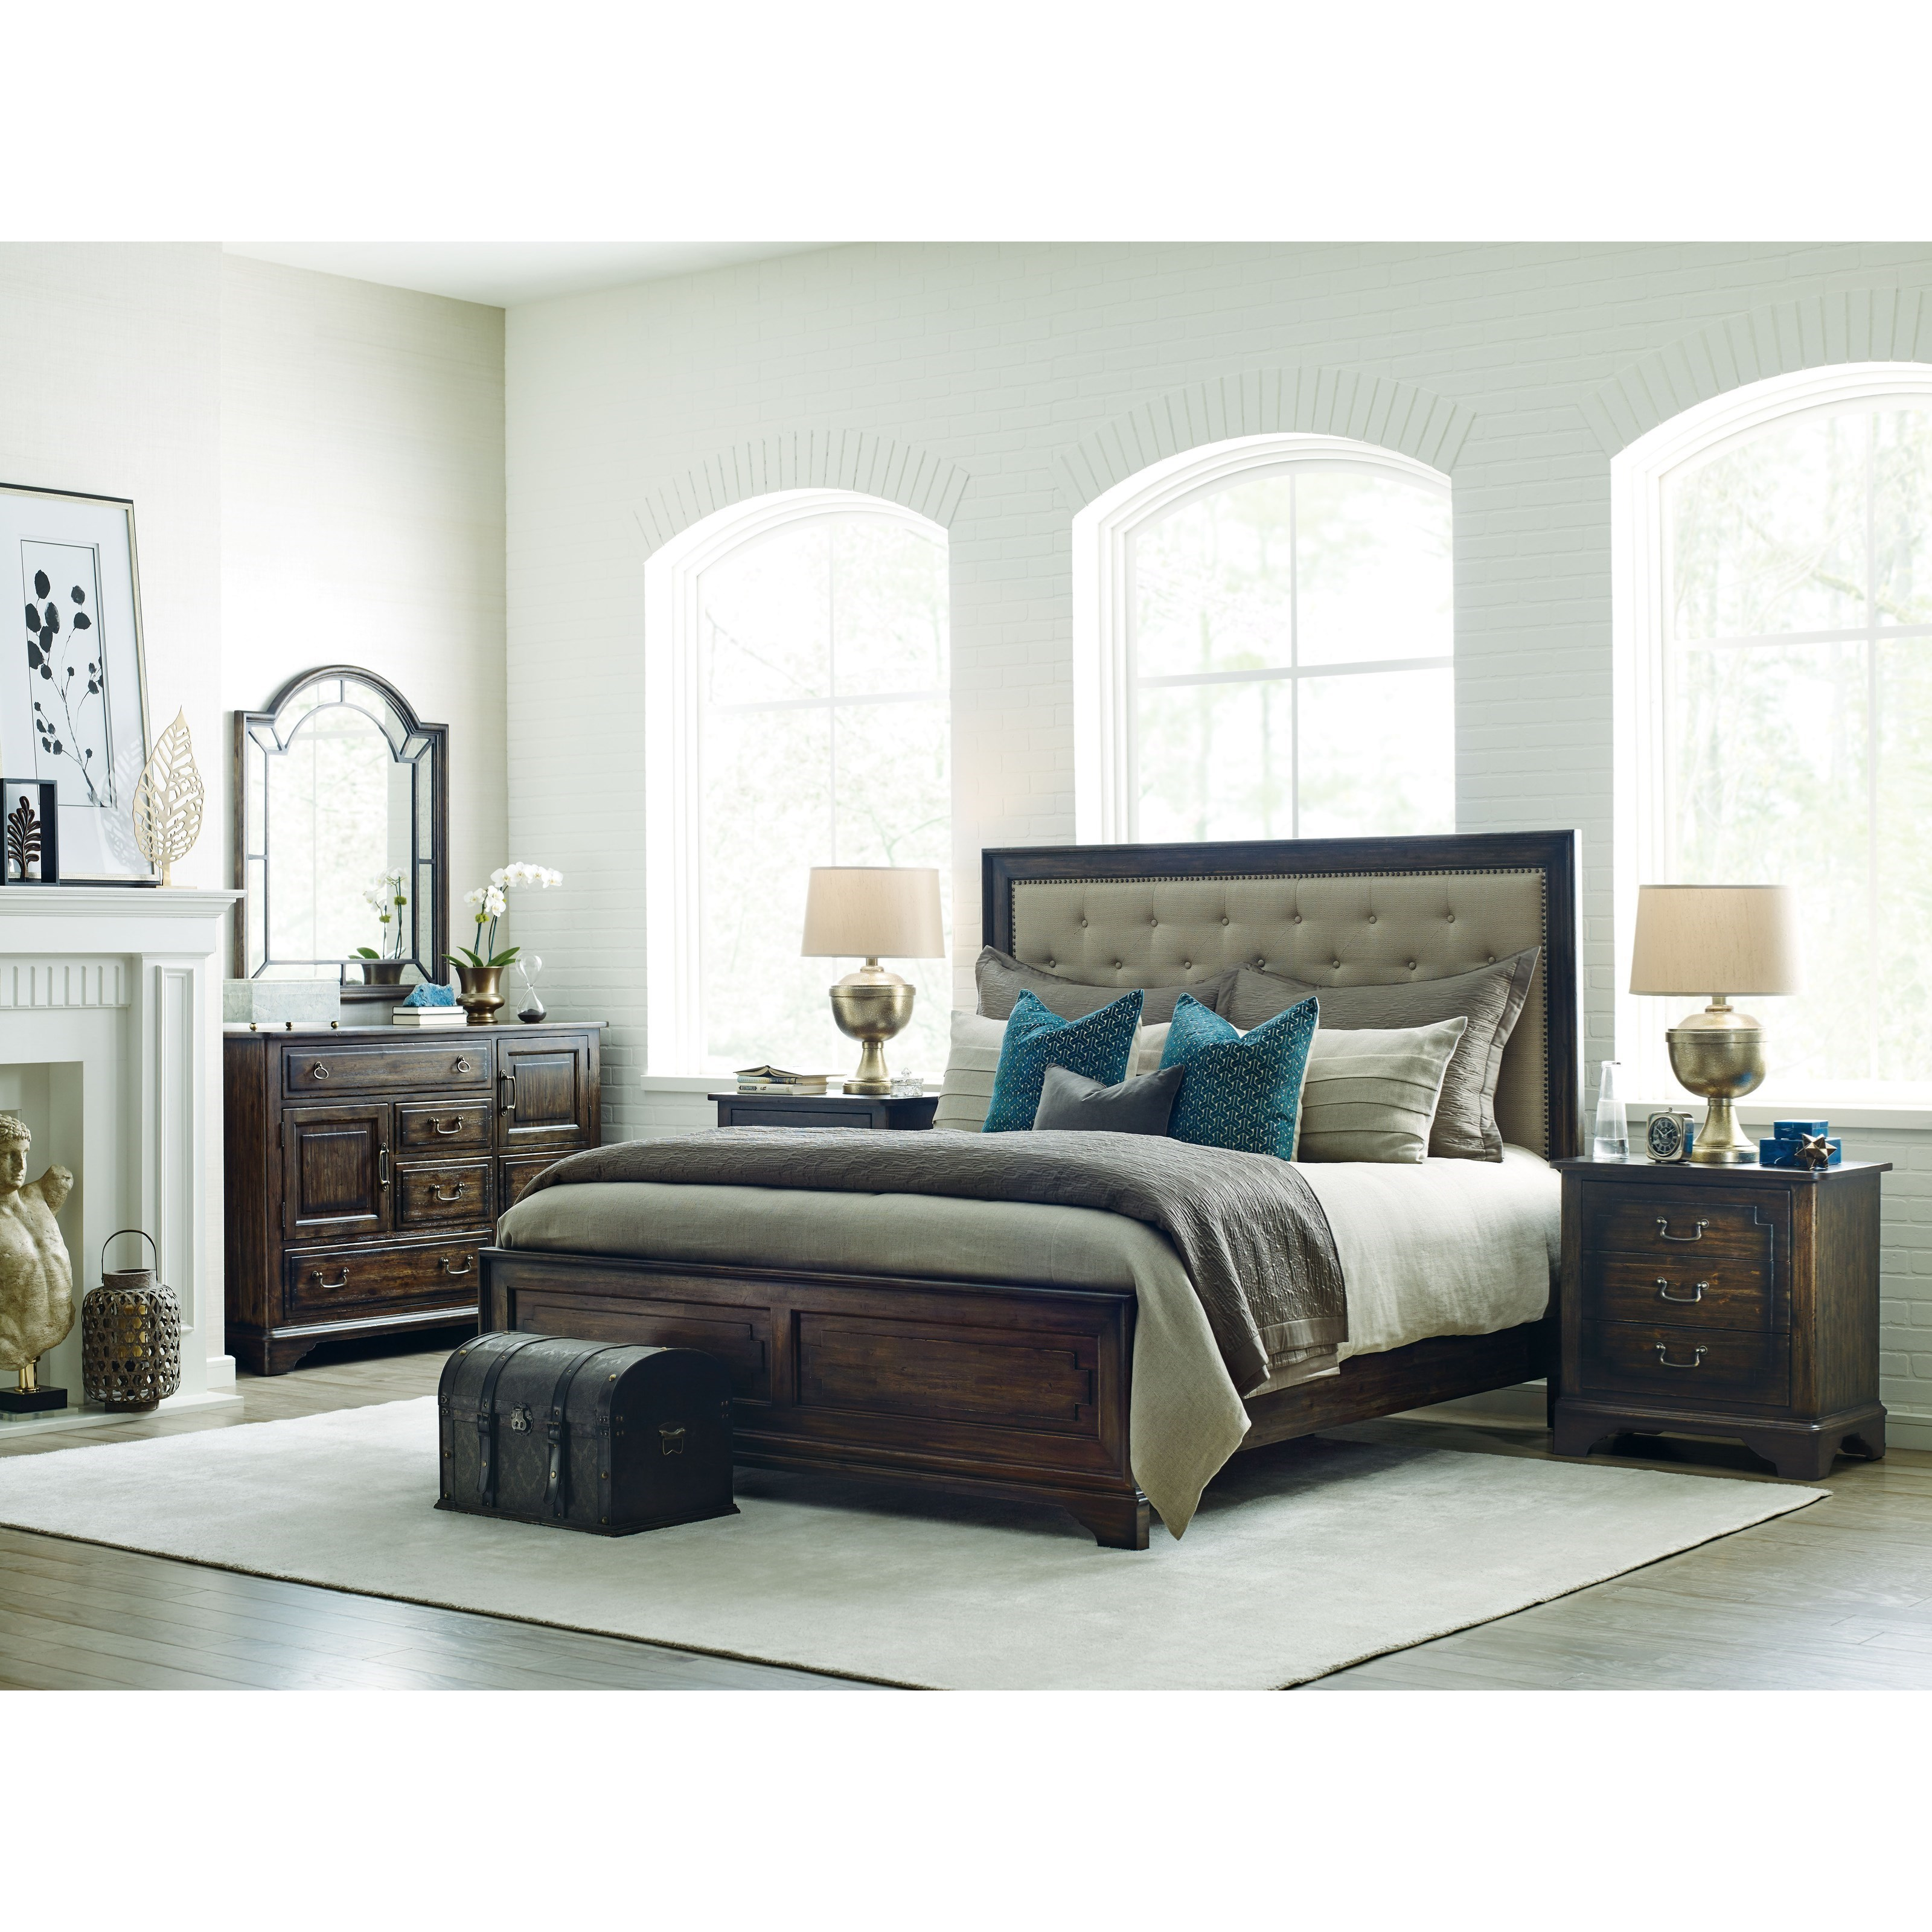 Kincaid furniture wildfire queen bedroom group olinde 39 s for Bedroom furniture groups